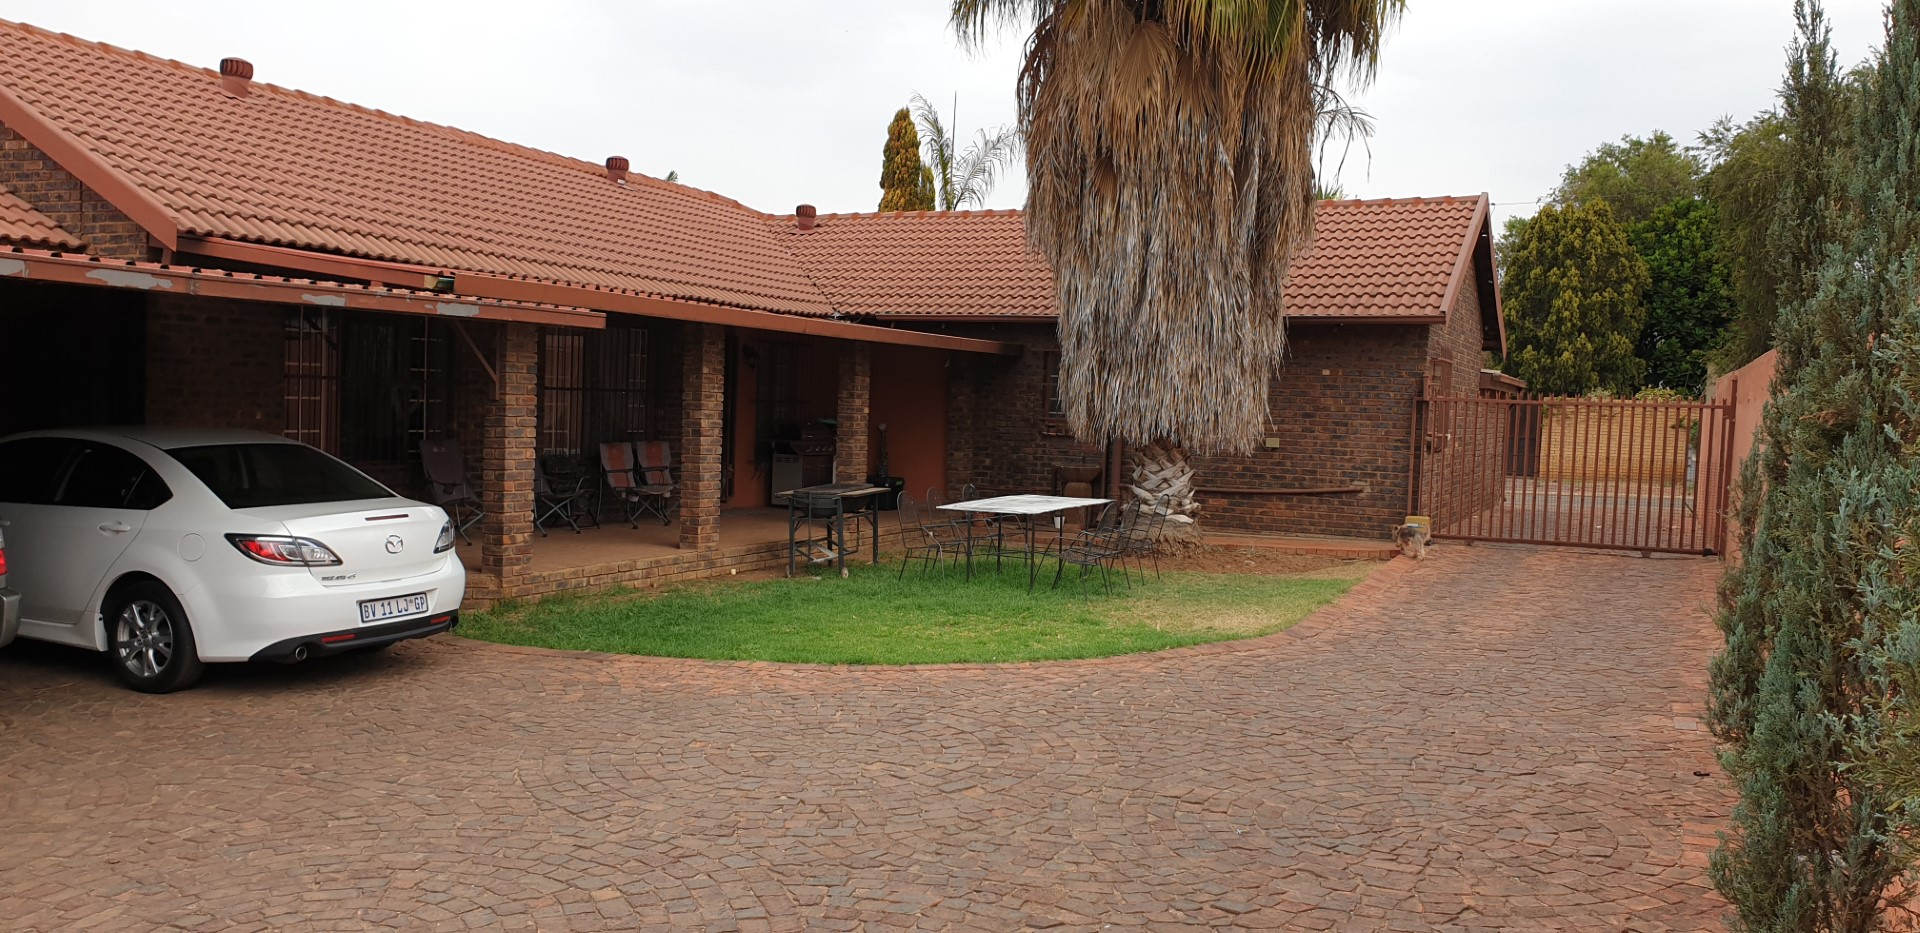 5 Bedroom Full-title House in a Security Complex, Montana Gardens